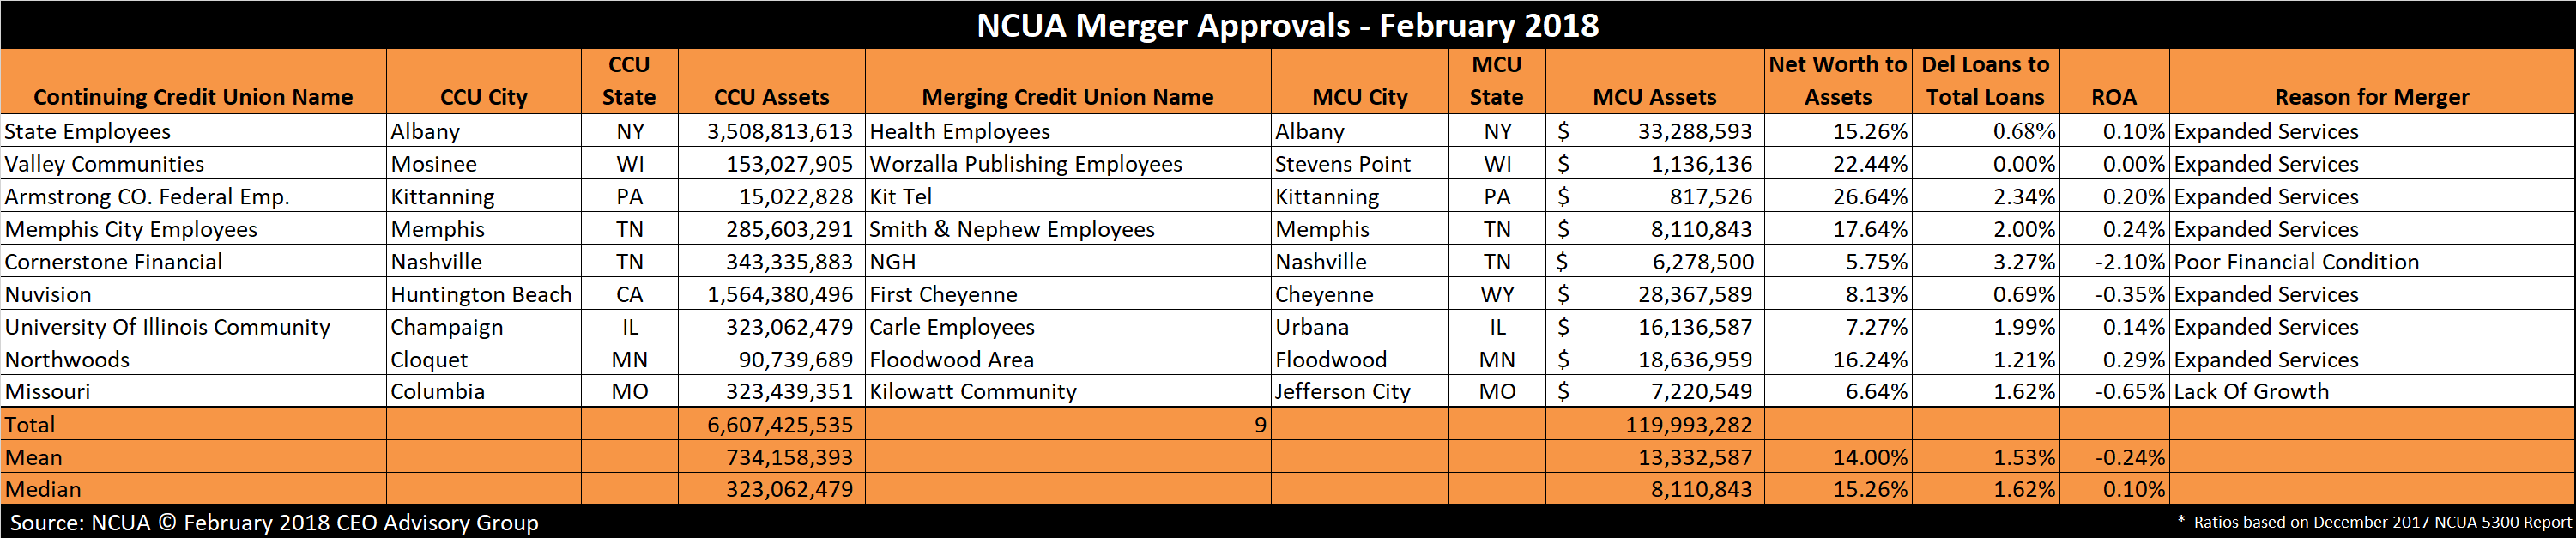 Credit Union Mergers February 2018